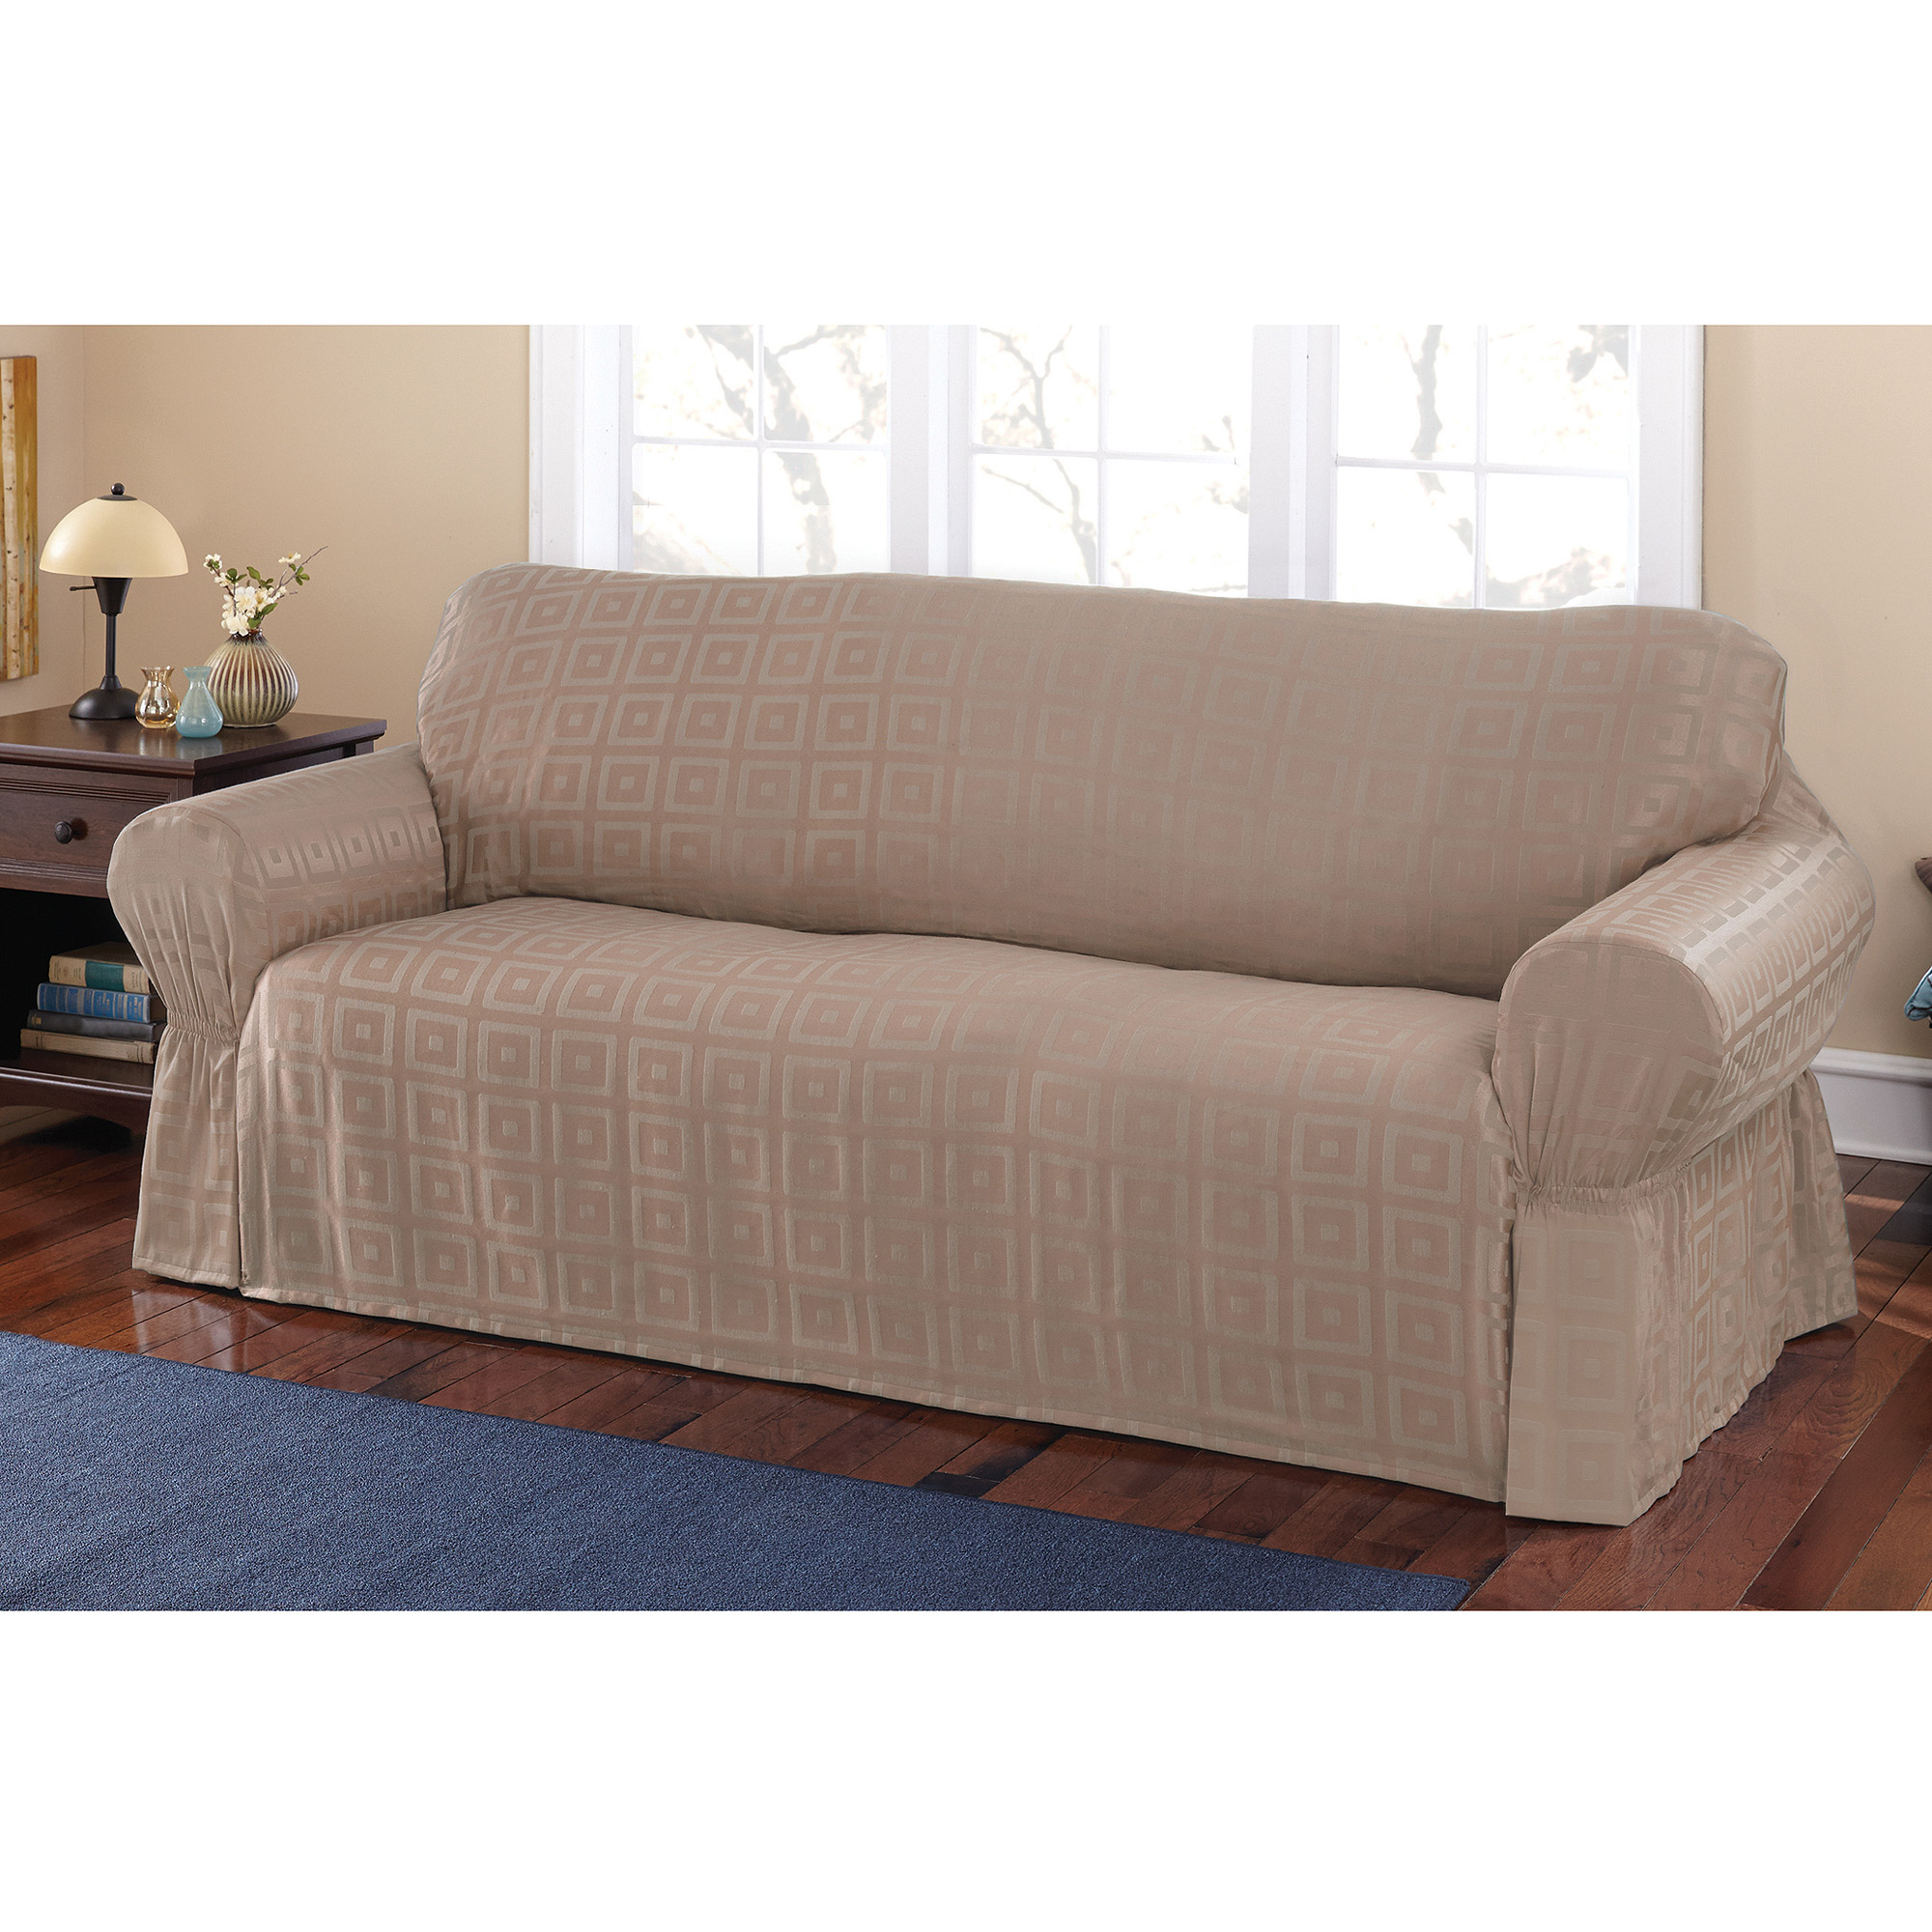 Sofa And Chair Slipcovers Intended For Trendy Mainstays Sherwood Slipcover Sofa – Walmart (View 16 of 20)